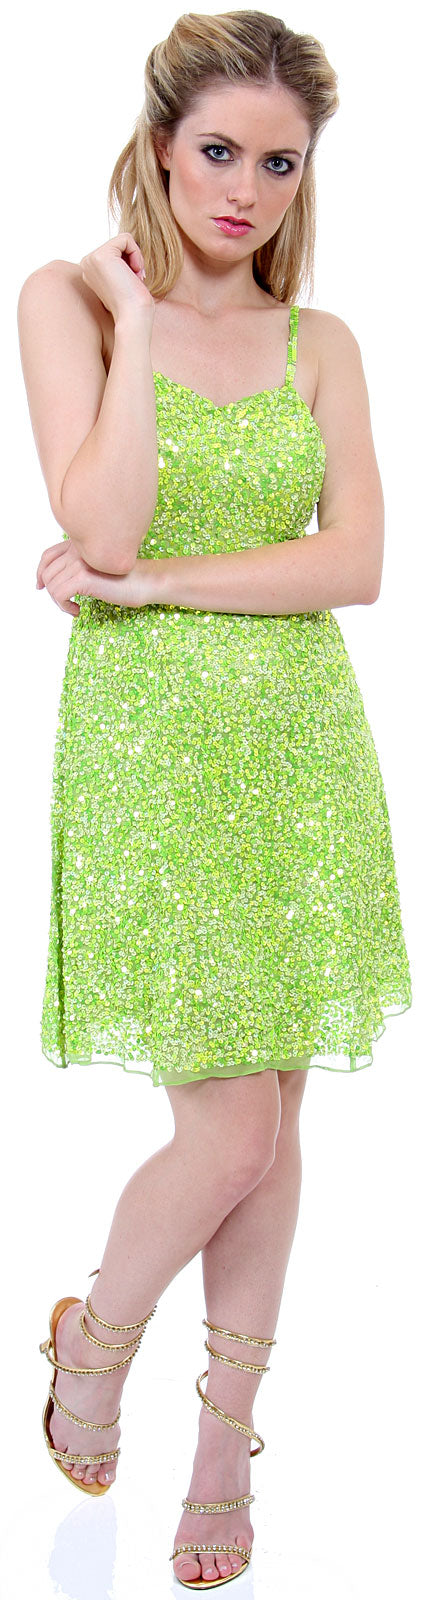 Main image of Short Sequin Spaghetti Strapped Party Dress